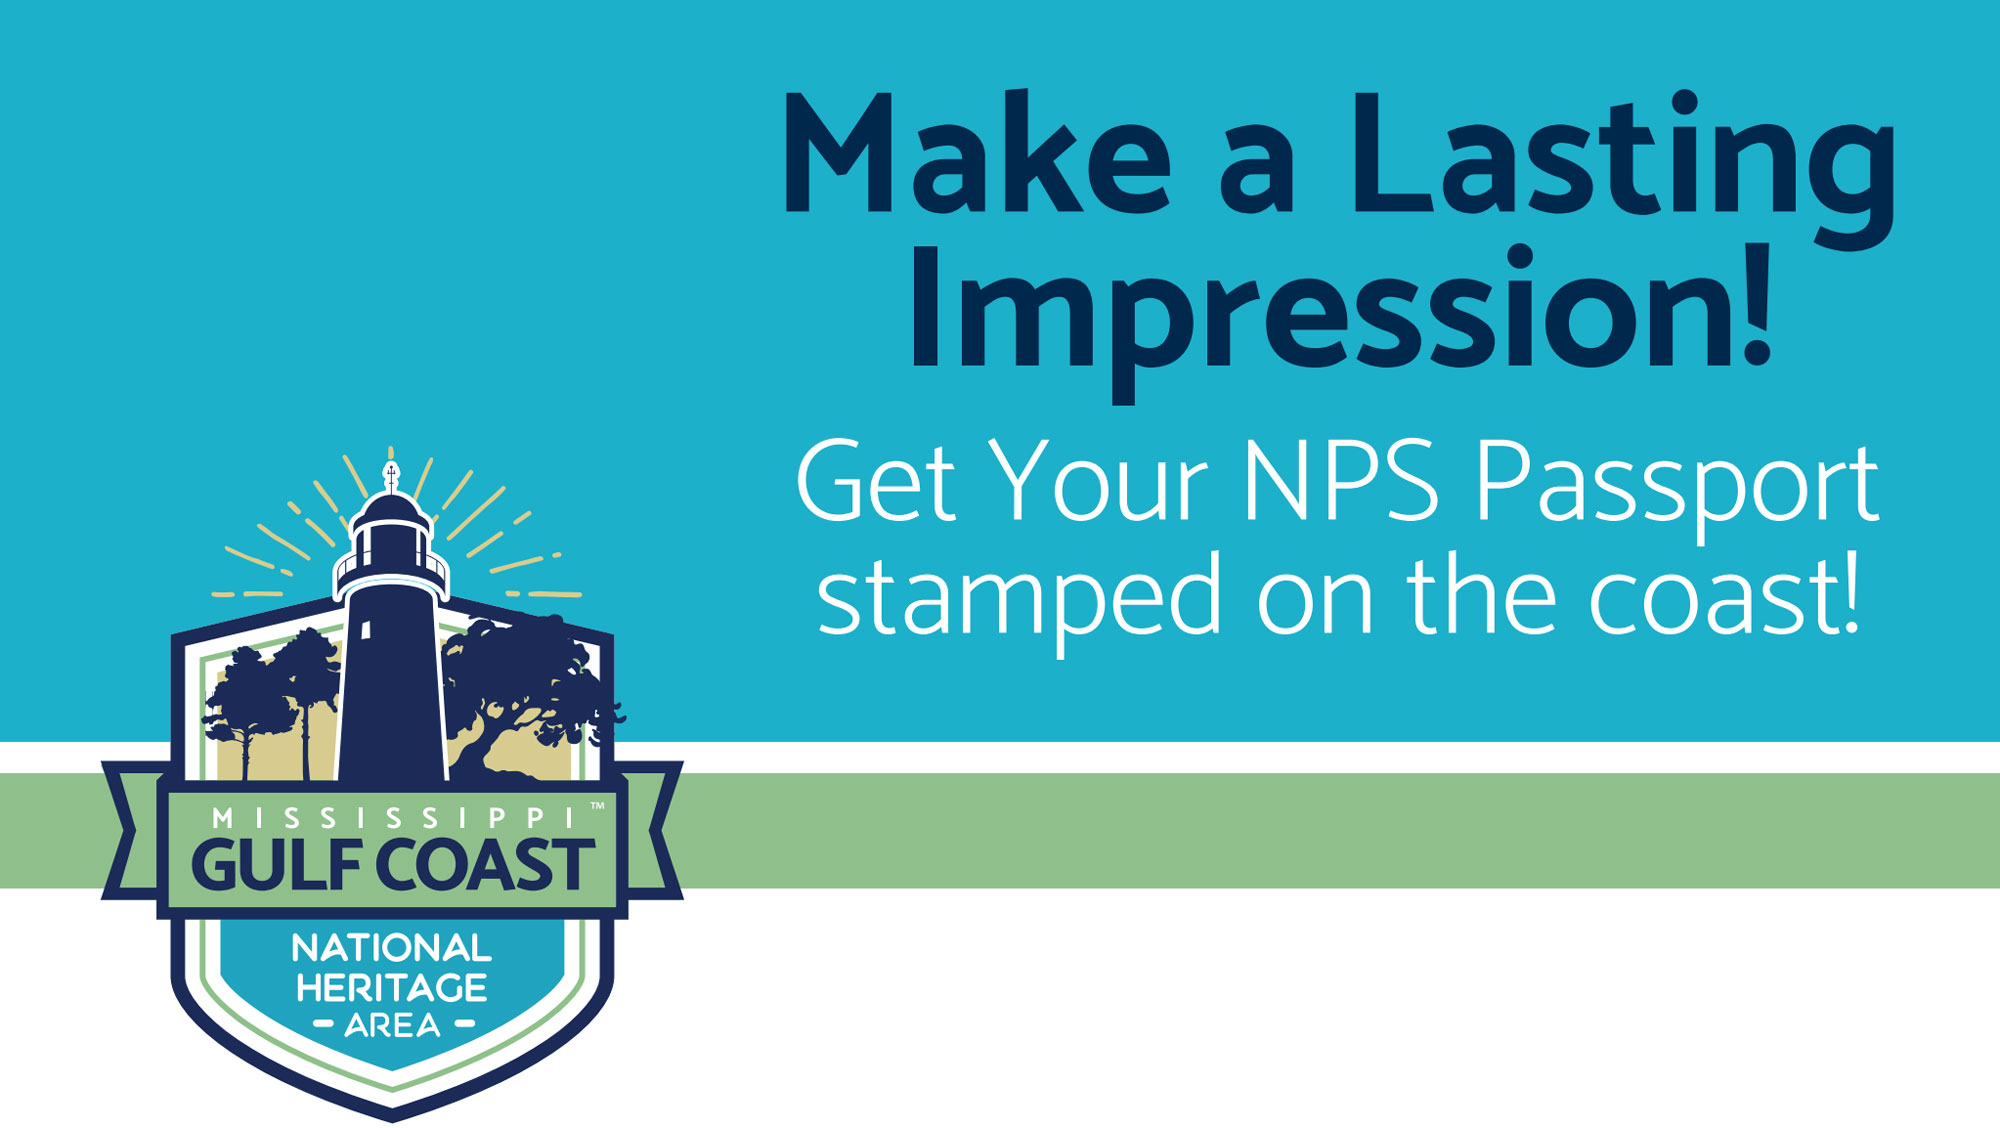 Get Your NPS Passport Stamped on the Coast